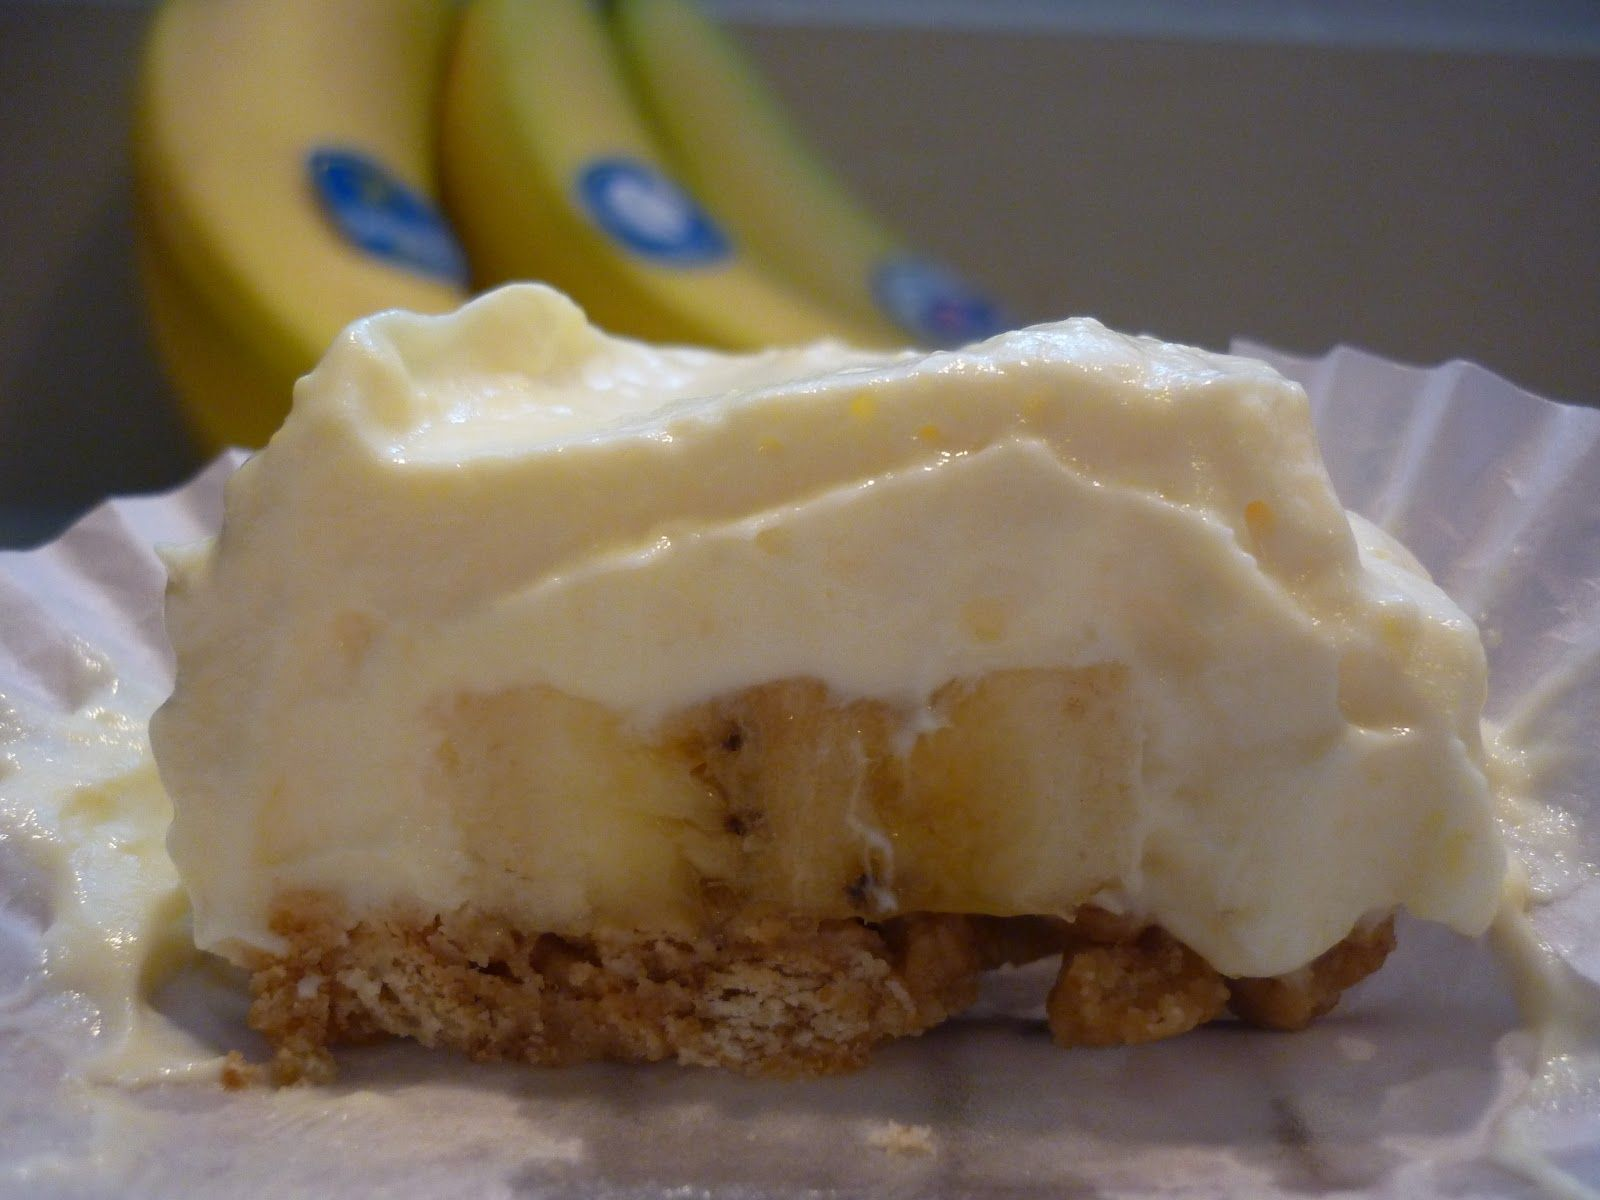 Greek Yogurt Banana Cream Mini Pies ~ 12 oz Plain Greek Yogurt, 1 Package Sugar Free/Fat Free Banana Cream Instant Pudding Mix, 1 cup Fat Free Milk, 1 Banana, 5 Graham Crackers, 3 Tbs Butter (I used I can't Believe It's Not Butter), 12 Cupcake Liners